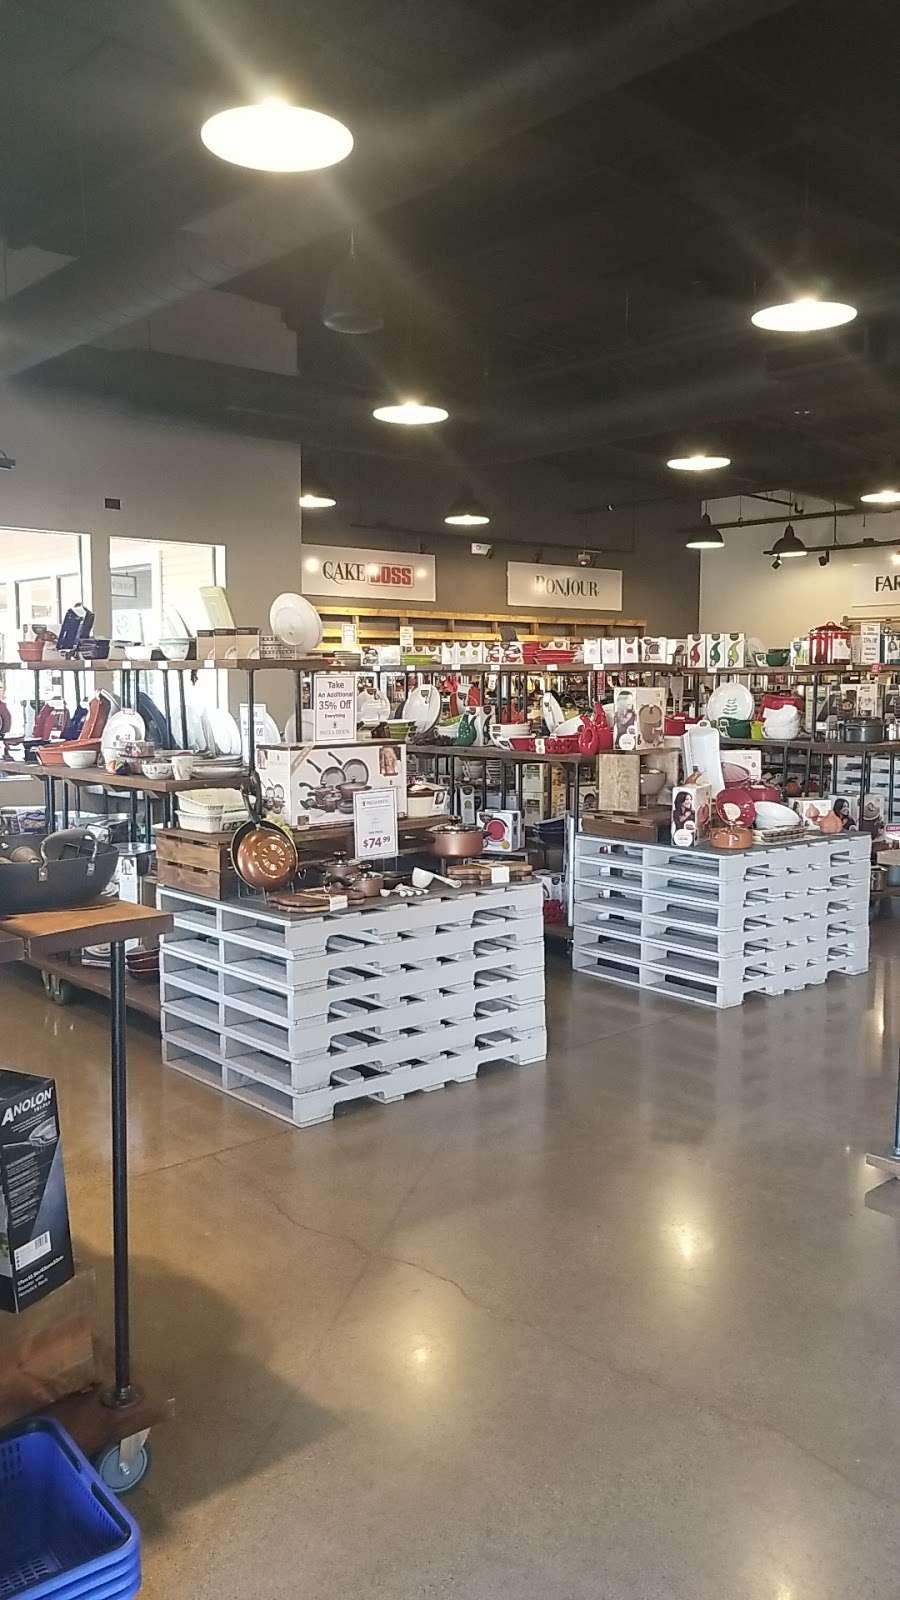 Pots & Pans Kitchenware Outlet - furniture store    Photo 2 of 6   Address: 232 Nut Tree Rd, Vacaville, CA 95687, USA   Phone: (707) 451-8695